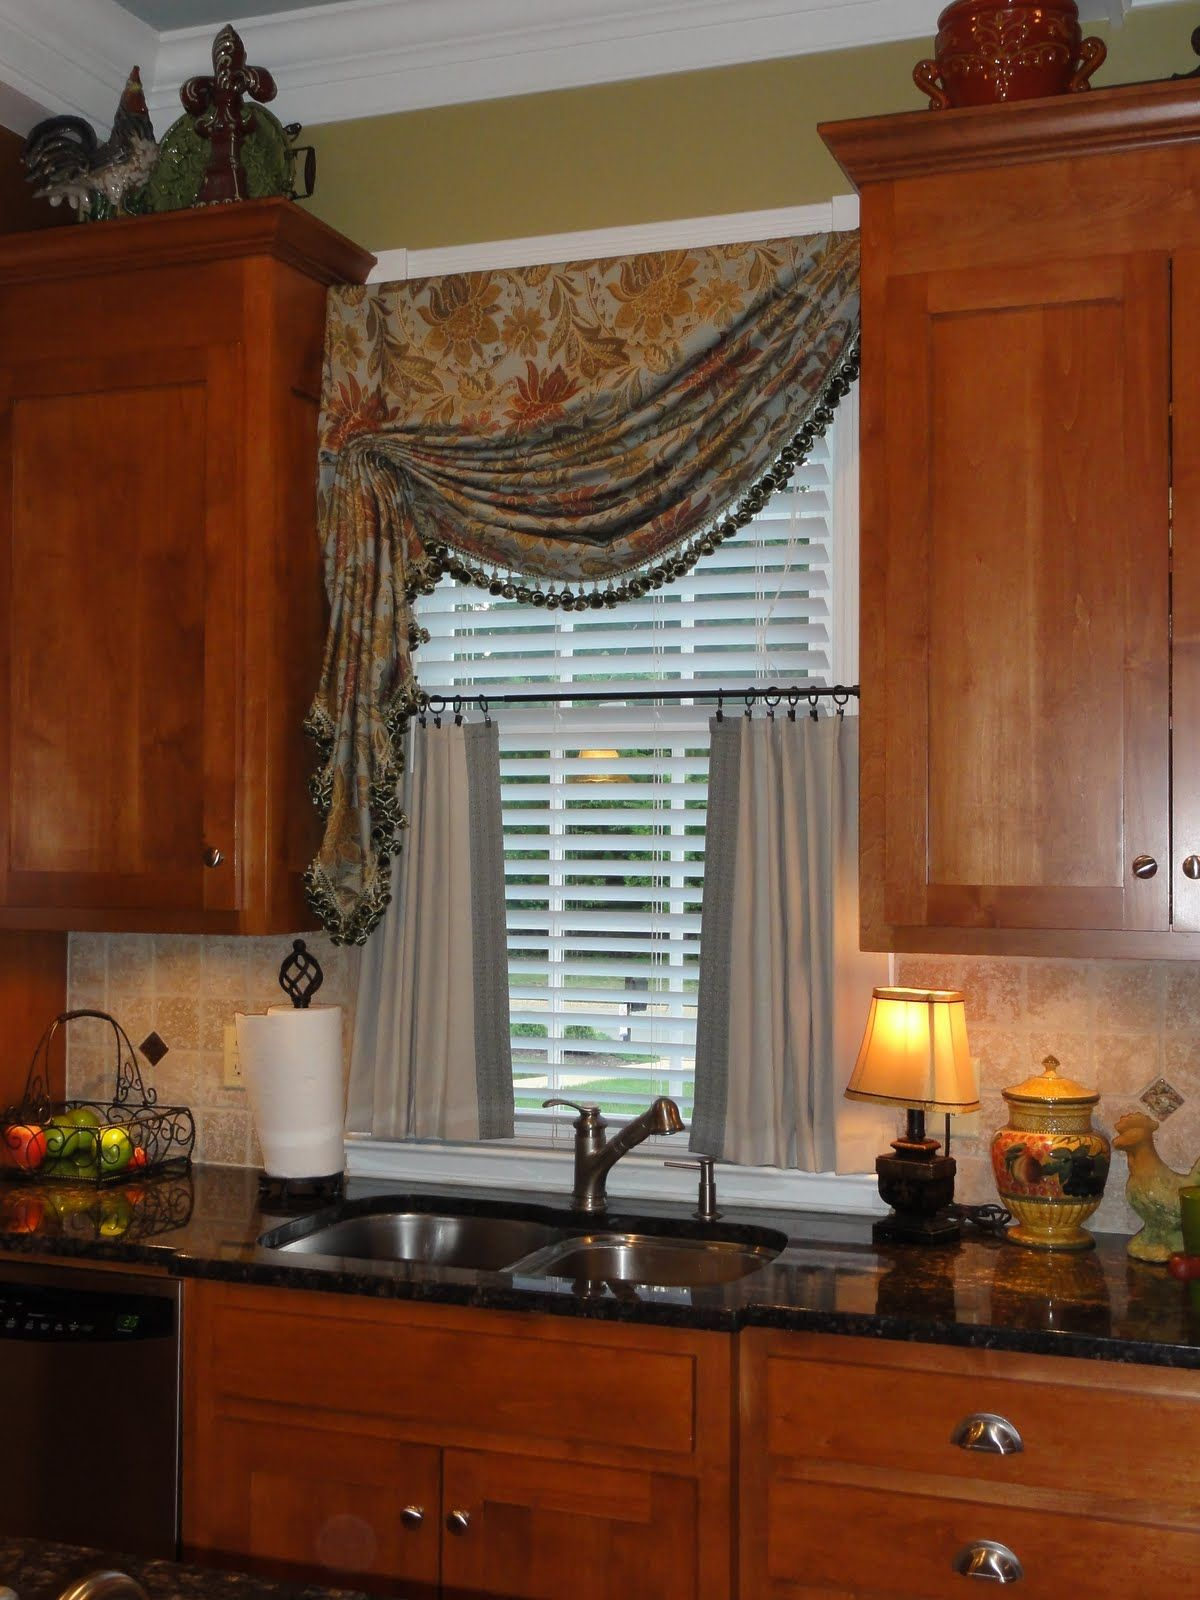 Both window curtains and blinds are great kitchen window ... on kitchen window trim ideas, window treatment design ideas, diy kitchen window treatment ideas, large kitchen window treatment ideas, modern bedroom curtain design ideas, kitchen swag valance ideas, burlap window treatment ideas, kitchen window cornice ideas, living room bay window treatment ideas, burlap curtain tie back ideas, kitchen window wood valance, kitchen window herb garden ideas, kitchen window covering ideas, kitchen valances for windows, kitchen bay window ideas, kitchen nook window treatment ideas, kitchen drapes ideas, kitchen window blinds ideas, no sew burlap curtains ideas, kitchen curtain ideas,